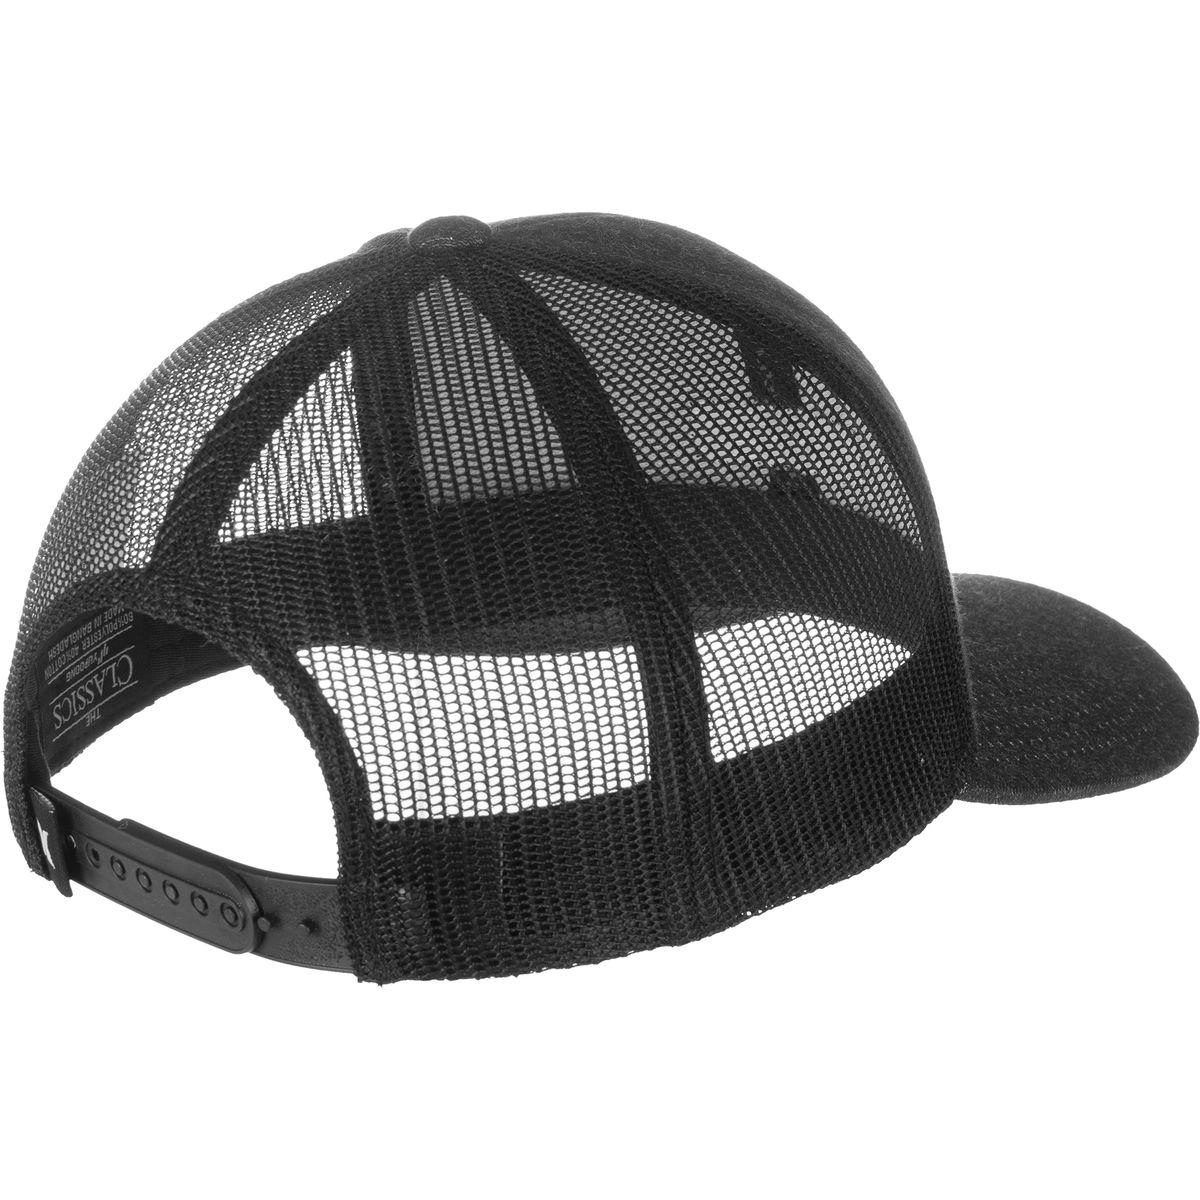 buy popular 78491 8d32d ... new zealand lyst hurley el morro trucker hat in black for men dfd85  79ece